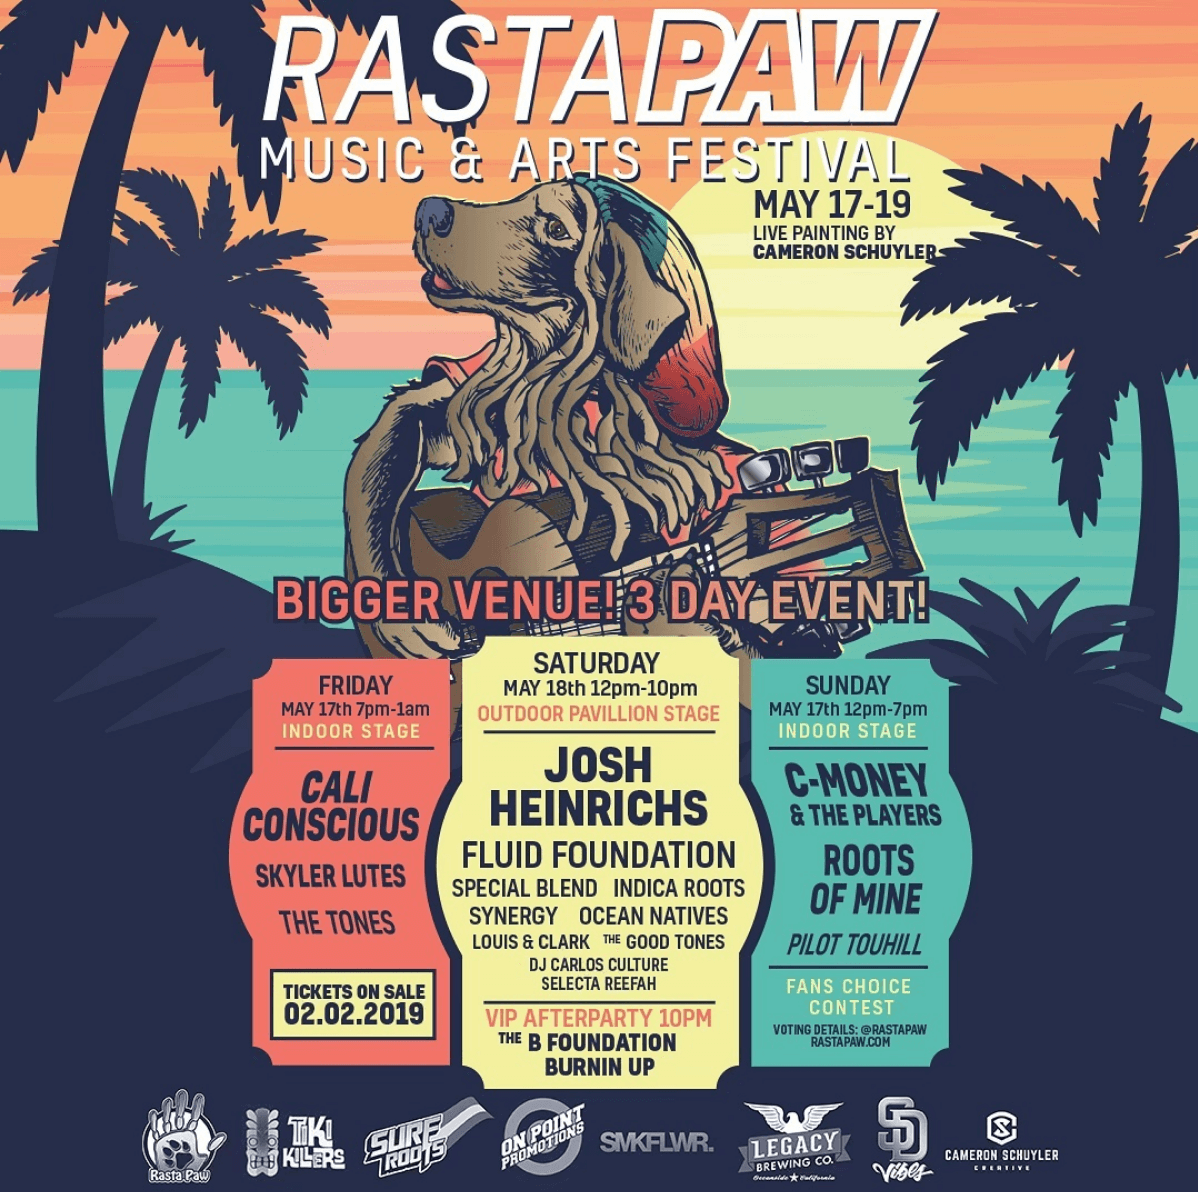 Rasta Paw Music Festival, Roots of Mine, LA Reggae band